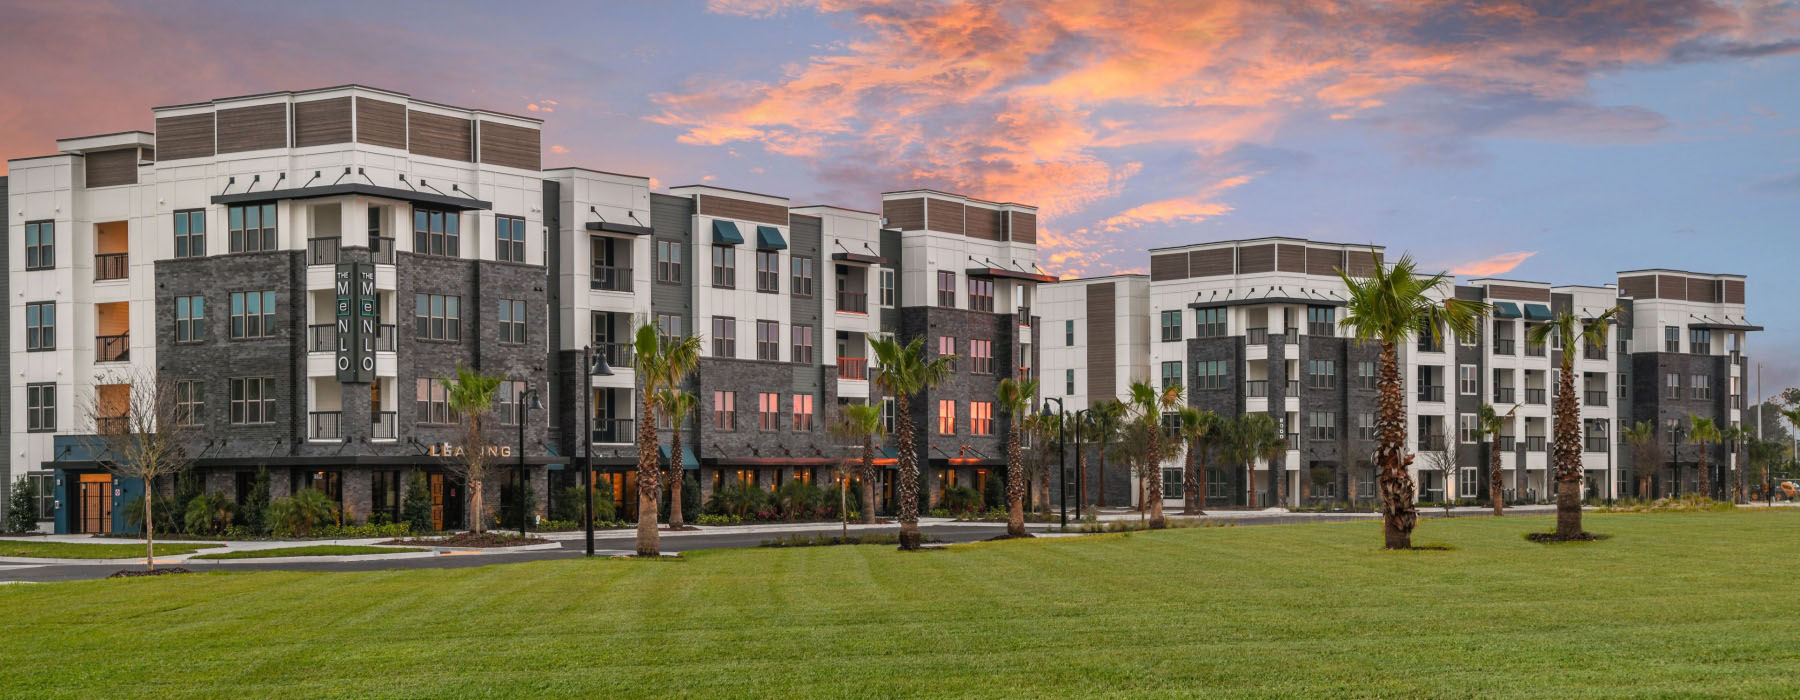 The Menlo Exterior Buildings at Sunset